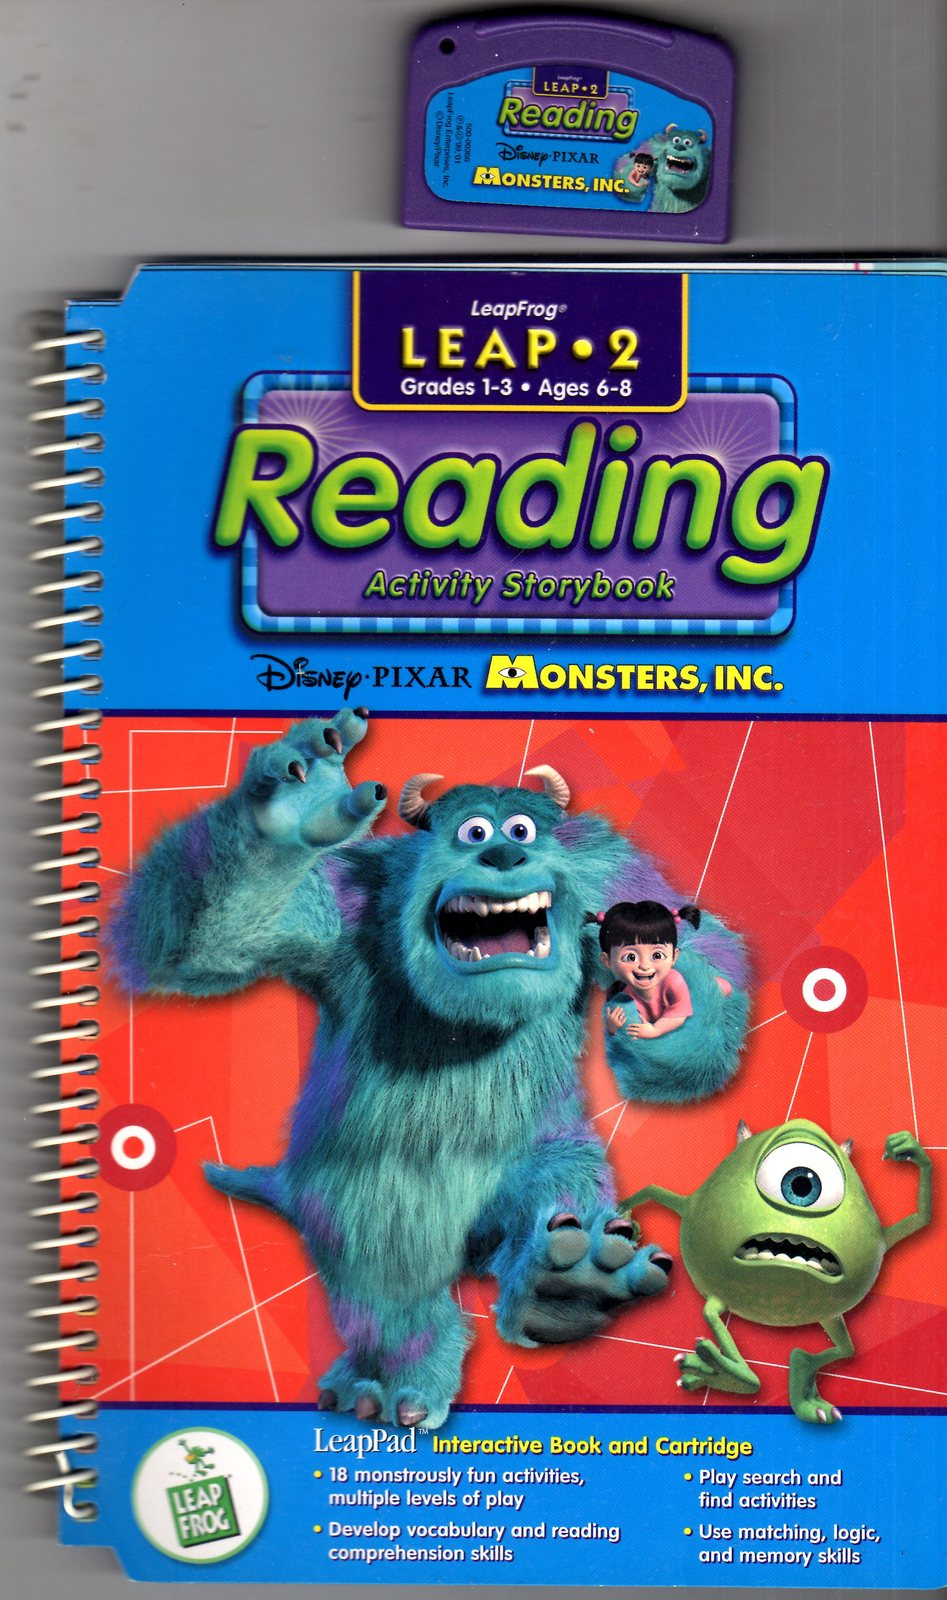 LeapFrog - Reading Activity Storybook - Monsters, Inc. - Leap 2